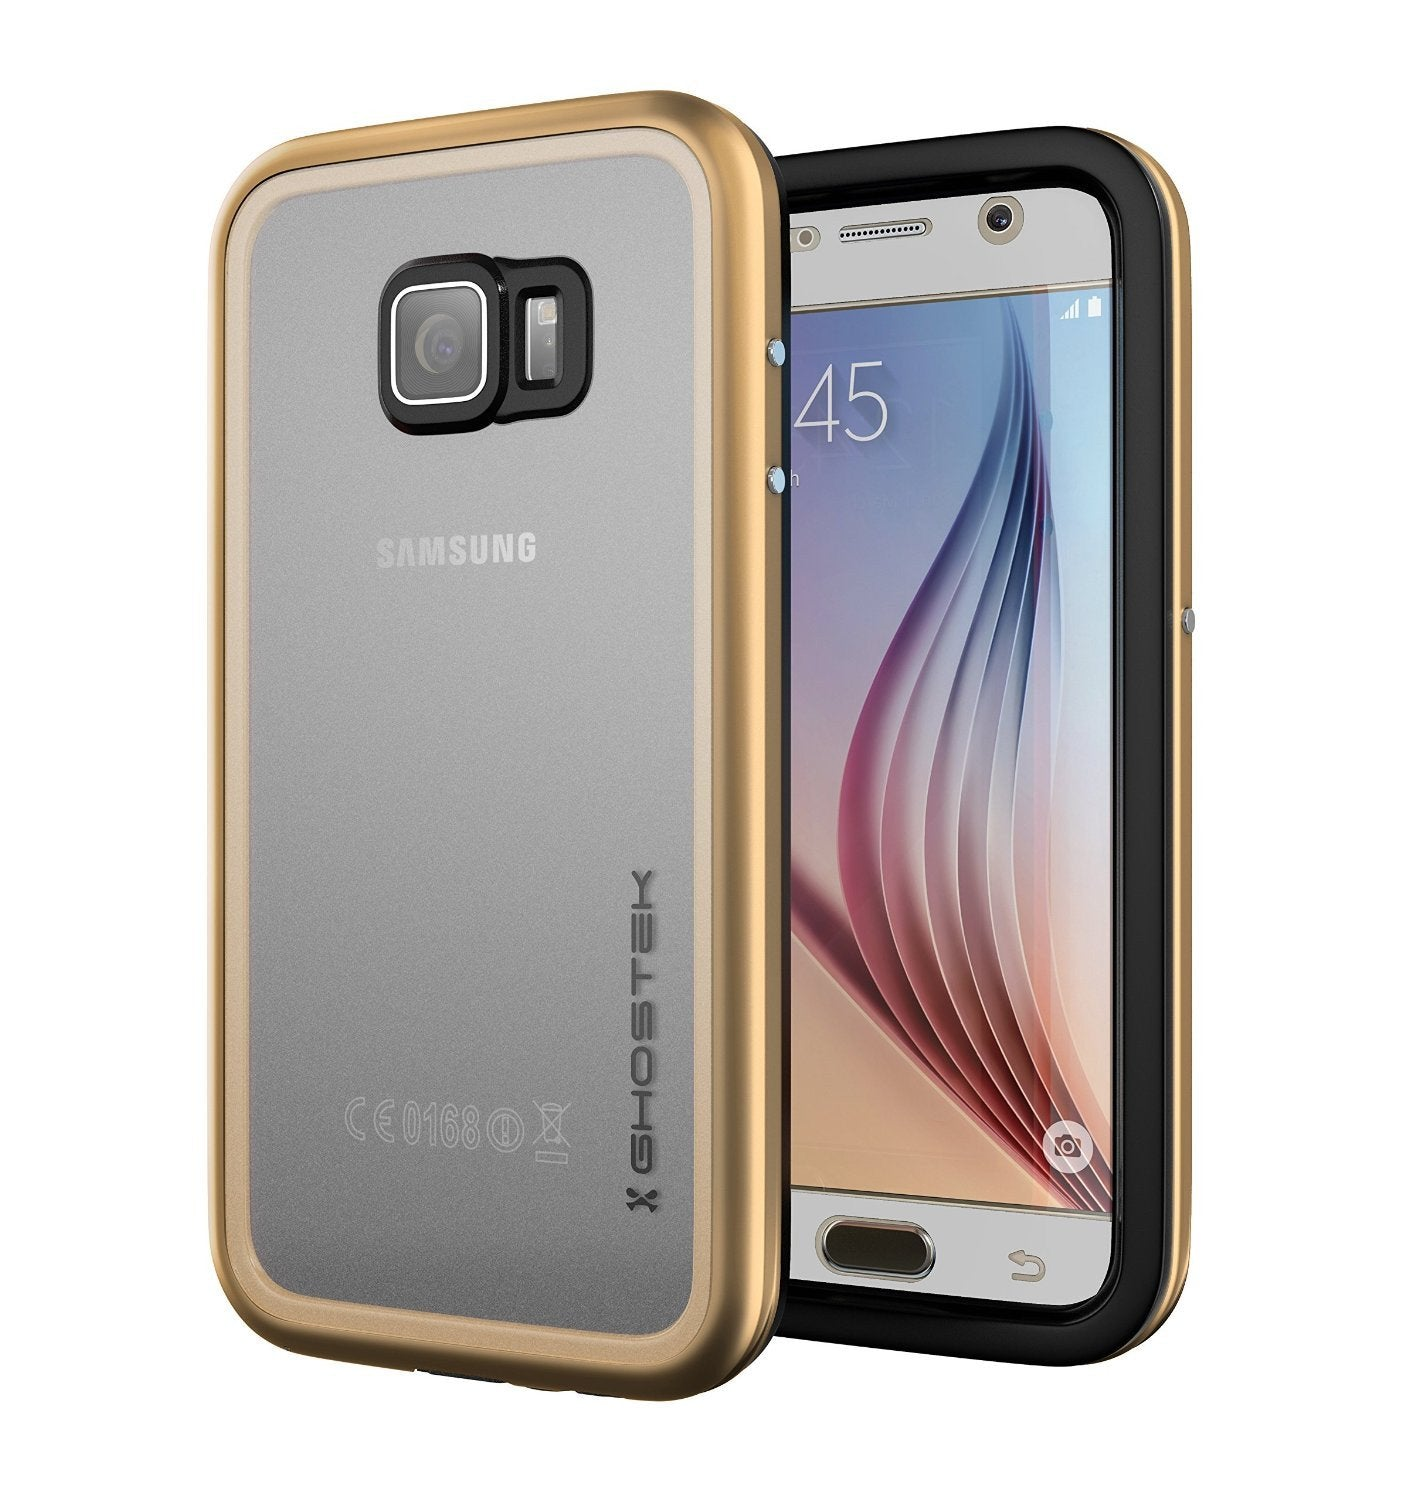 Galaxy S6 Waterproof Case, Ghostek Atomic 2.0 Gold  Water/Shock/Dirt/Snow Proof | Lifetime Warranty